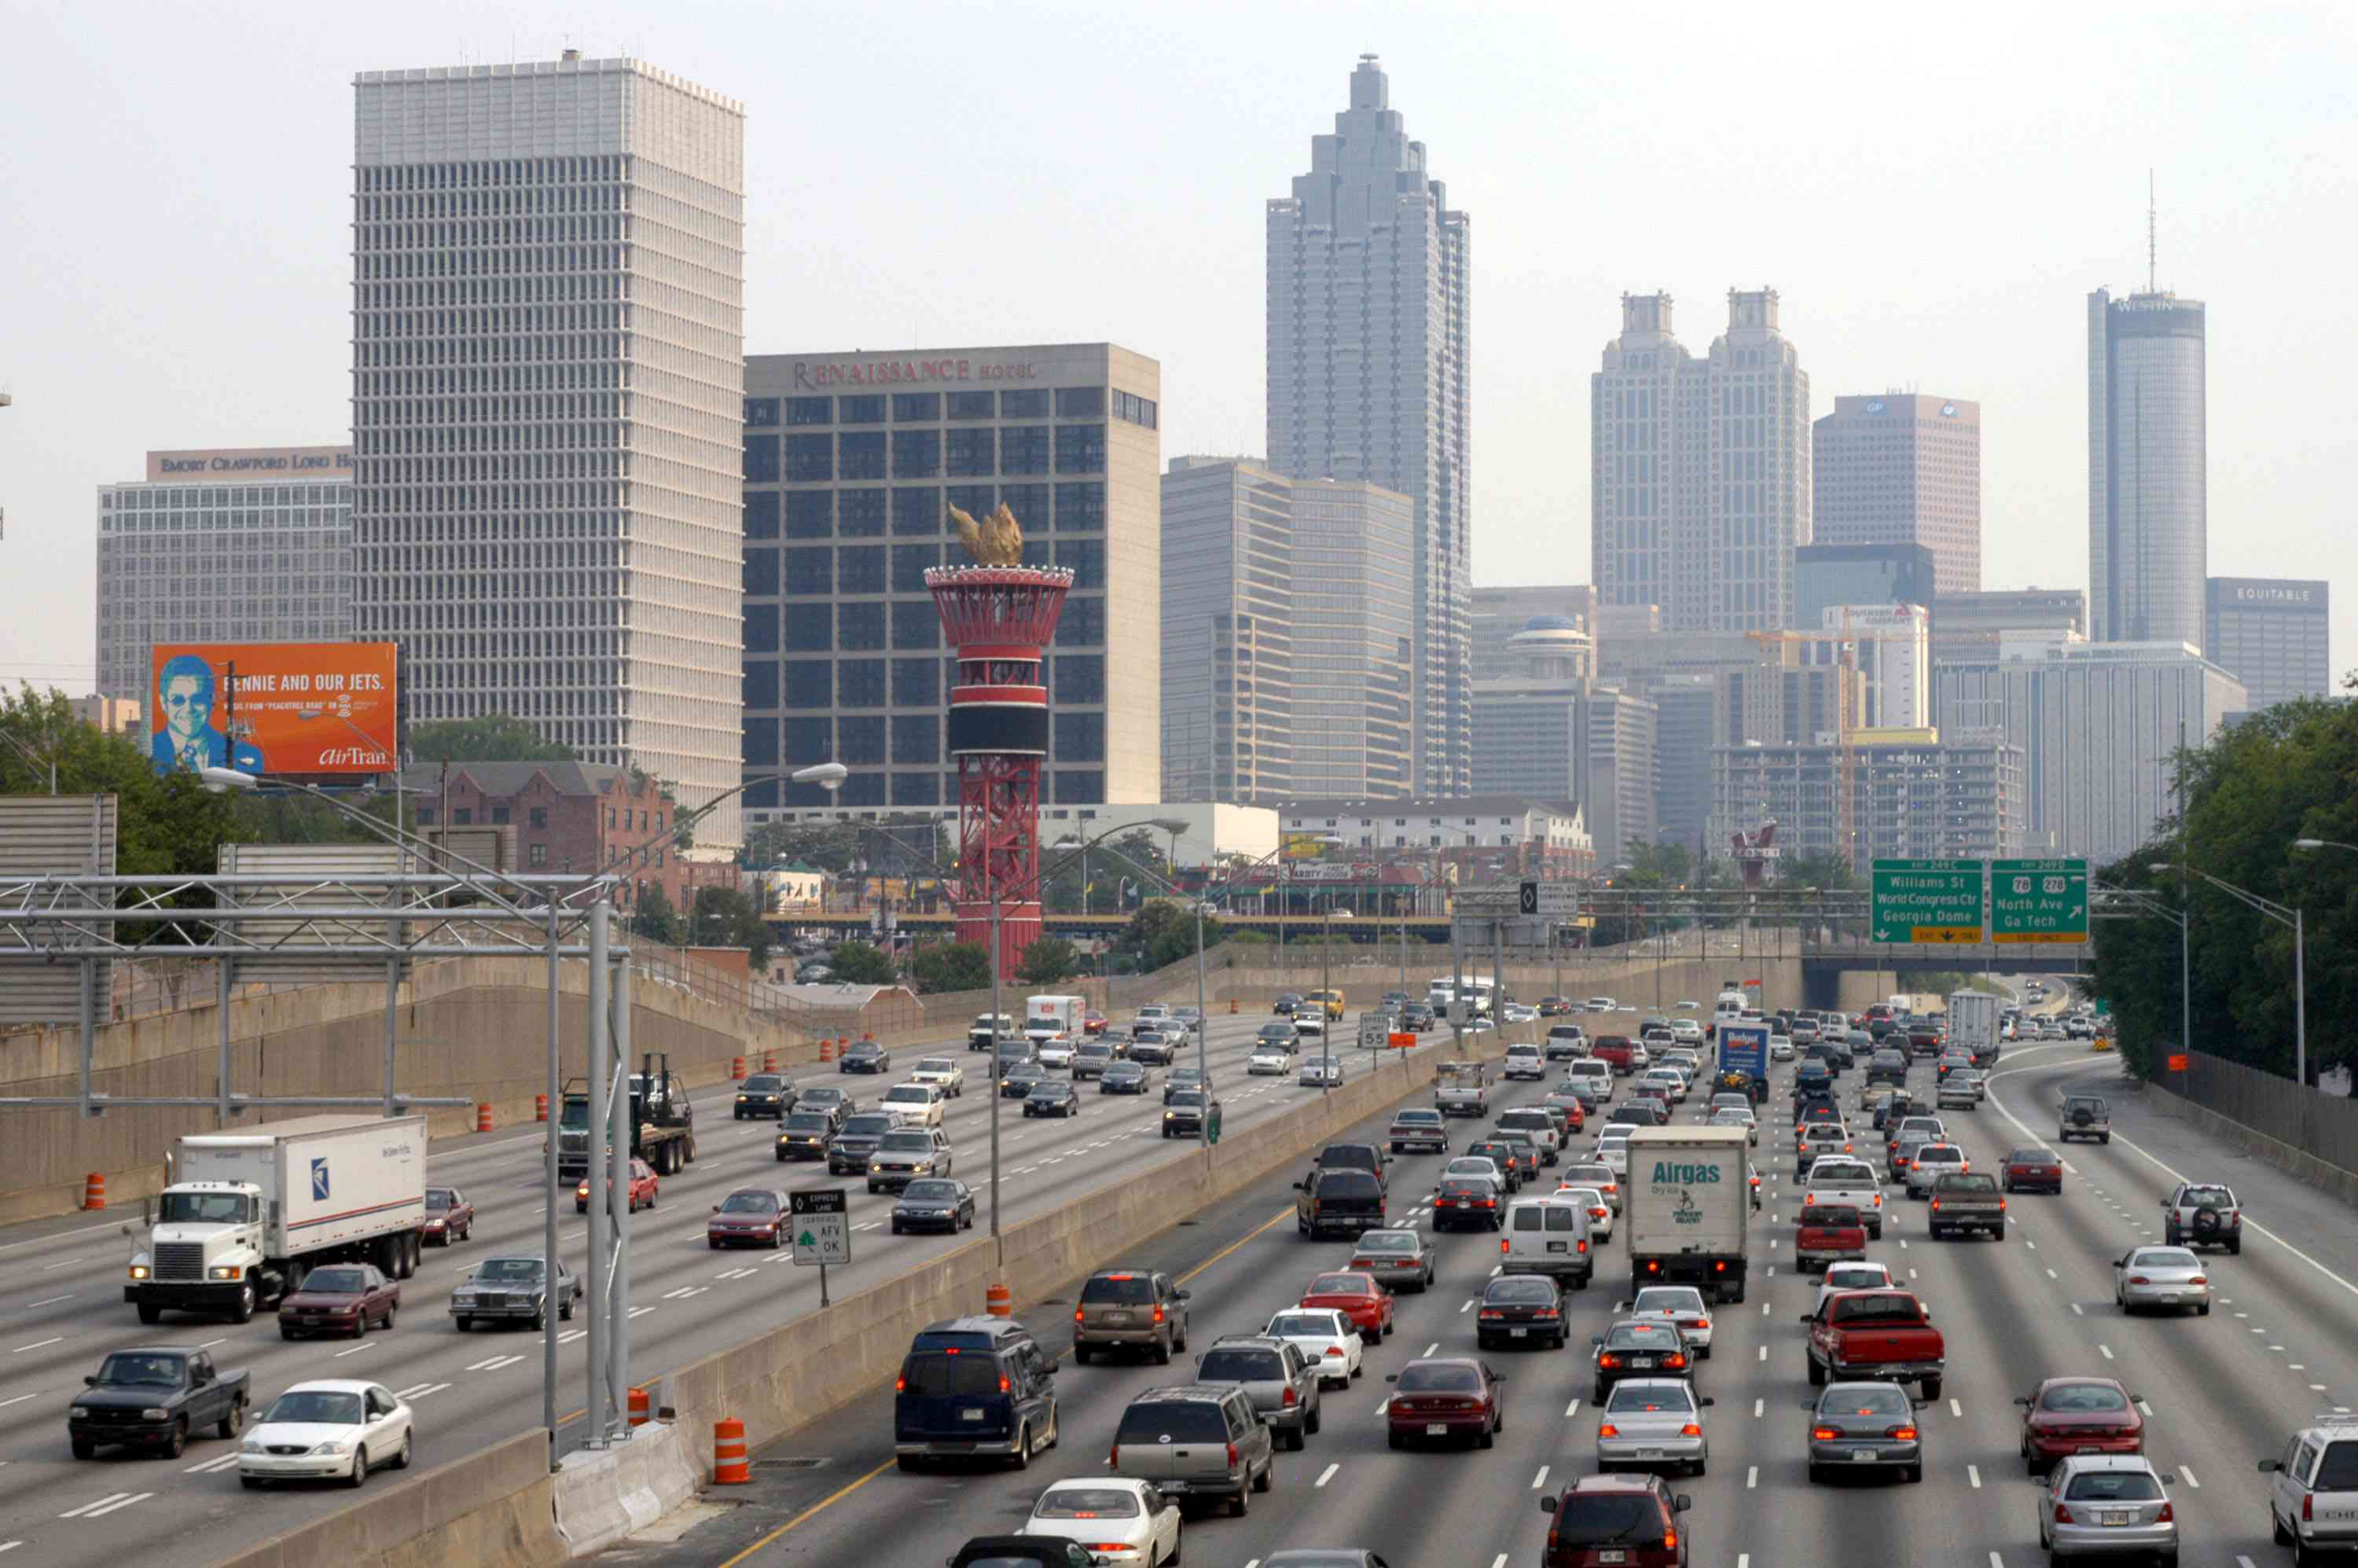 The route to downtown Atlanta that I took to work was usually snarled, causing me to spend about an hour commuting each day.